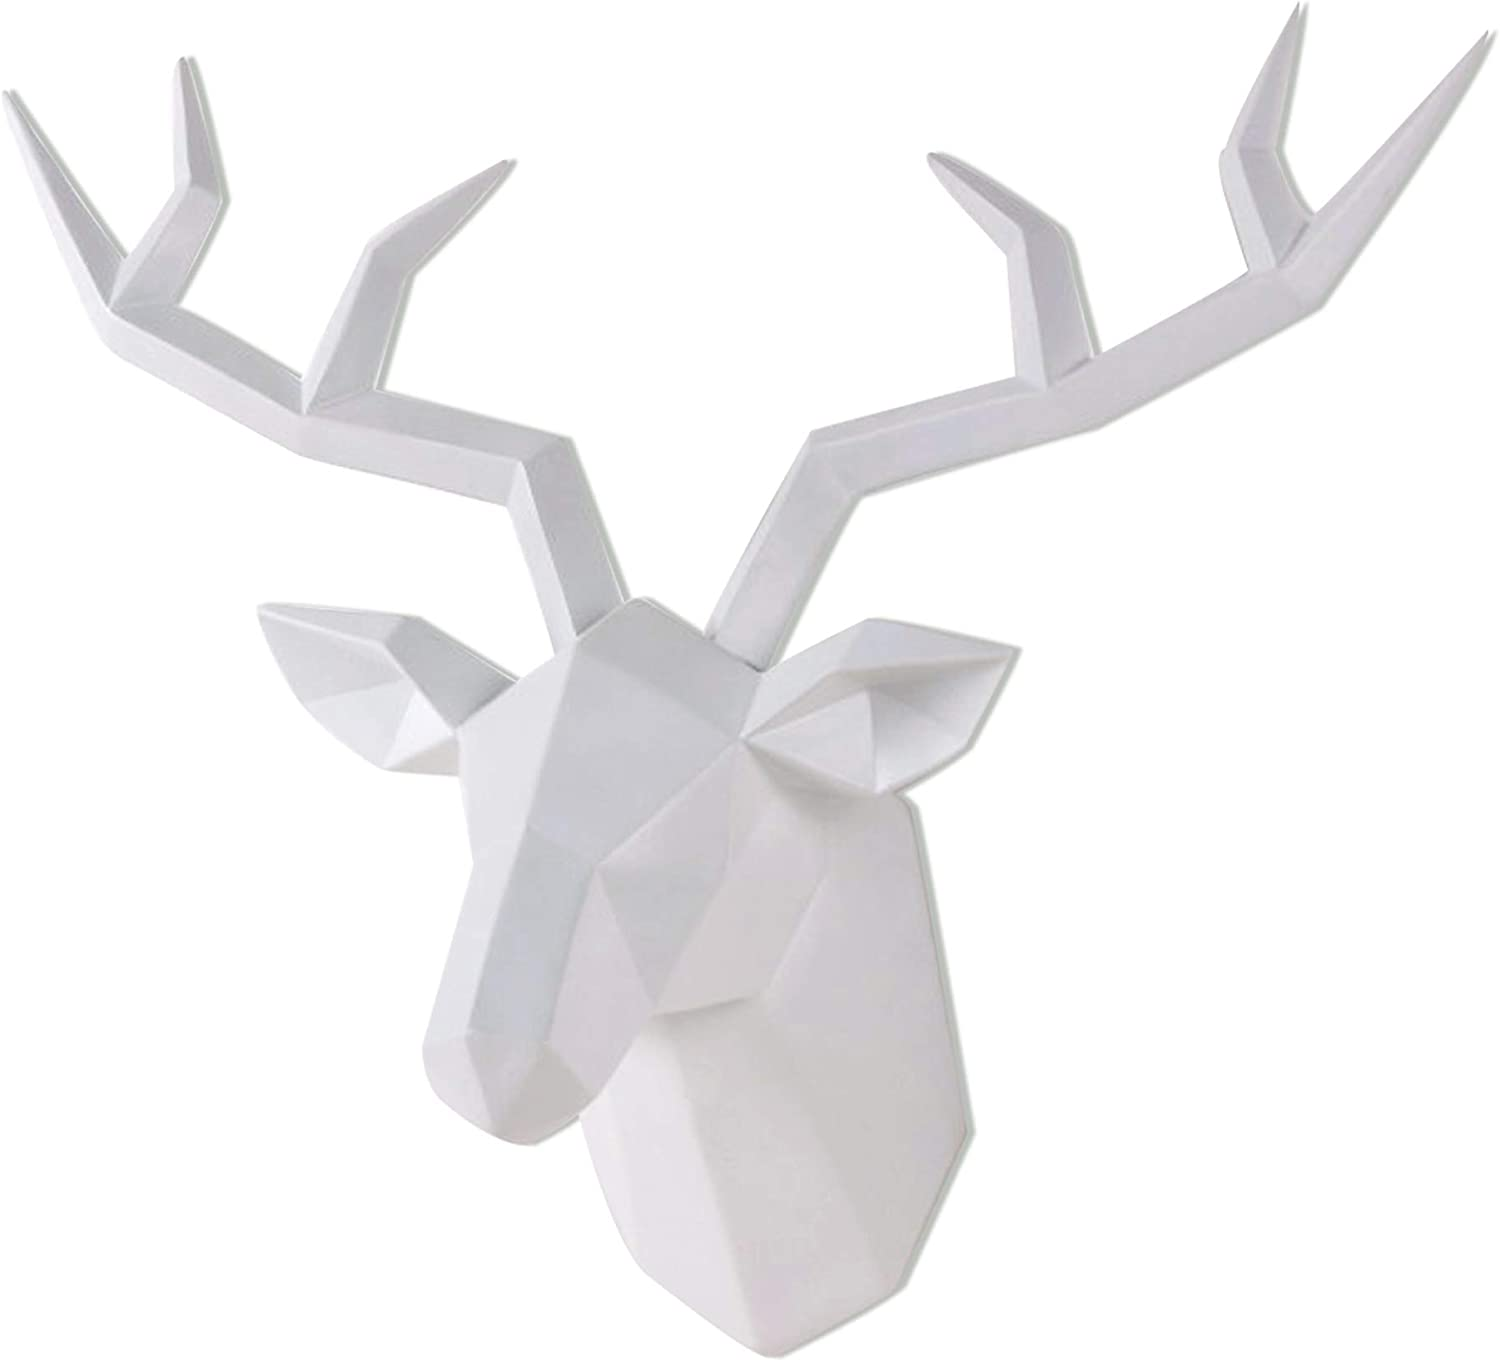 Deer Head Wall Decor Geometrical White Deer Antlers Wall Sculpture Faux Taxidermy Resin Wall Animal Head 14x5.5x11 Inches